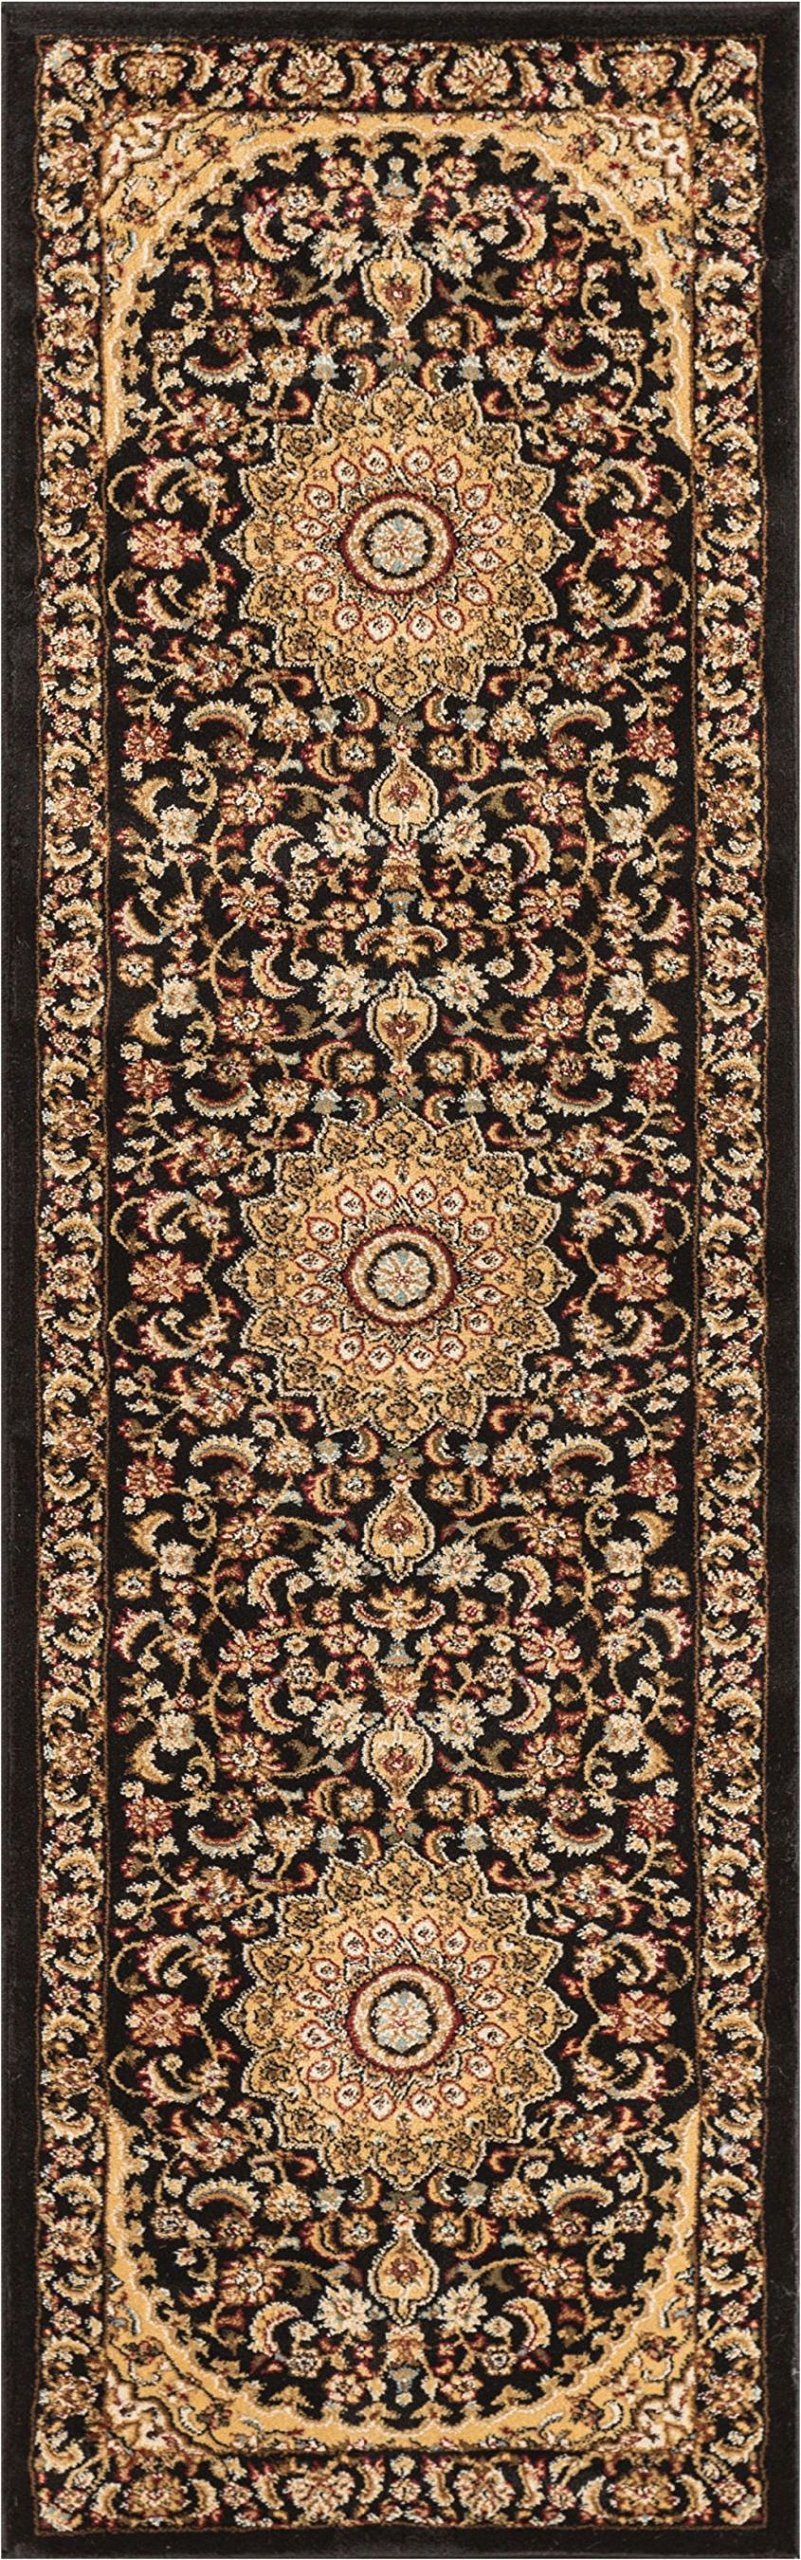 Well Woven 36432 Timeless Aviva Traditional French Country Oriental Black Rug 2'3'' x 7'3'' Runner